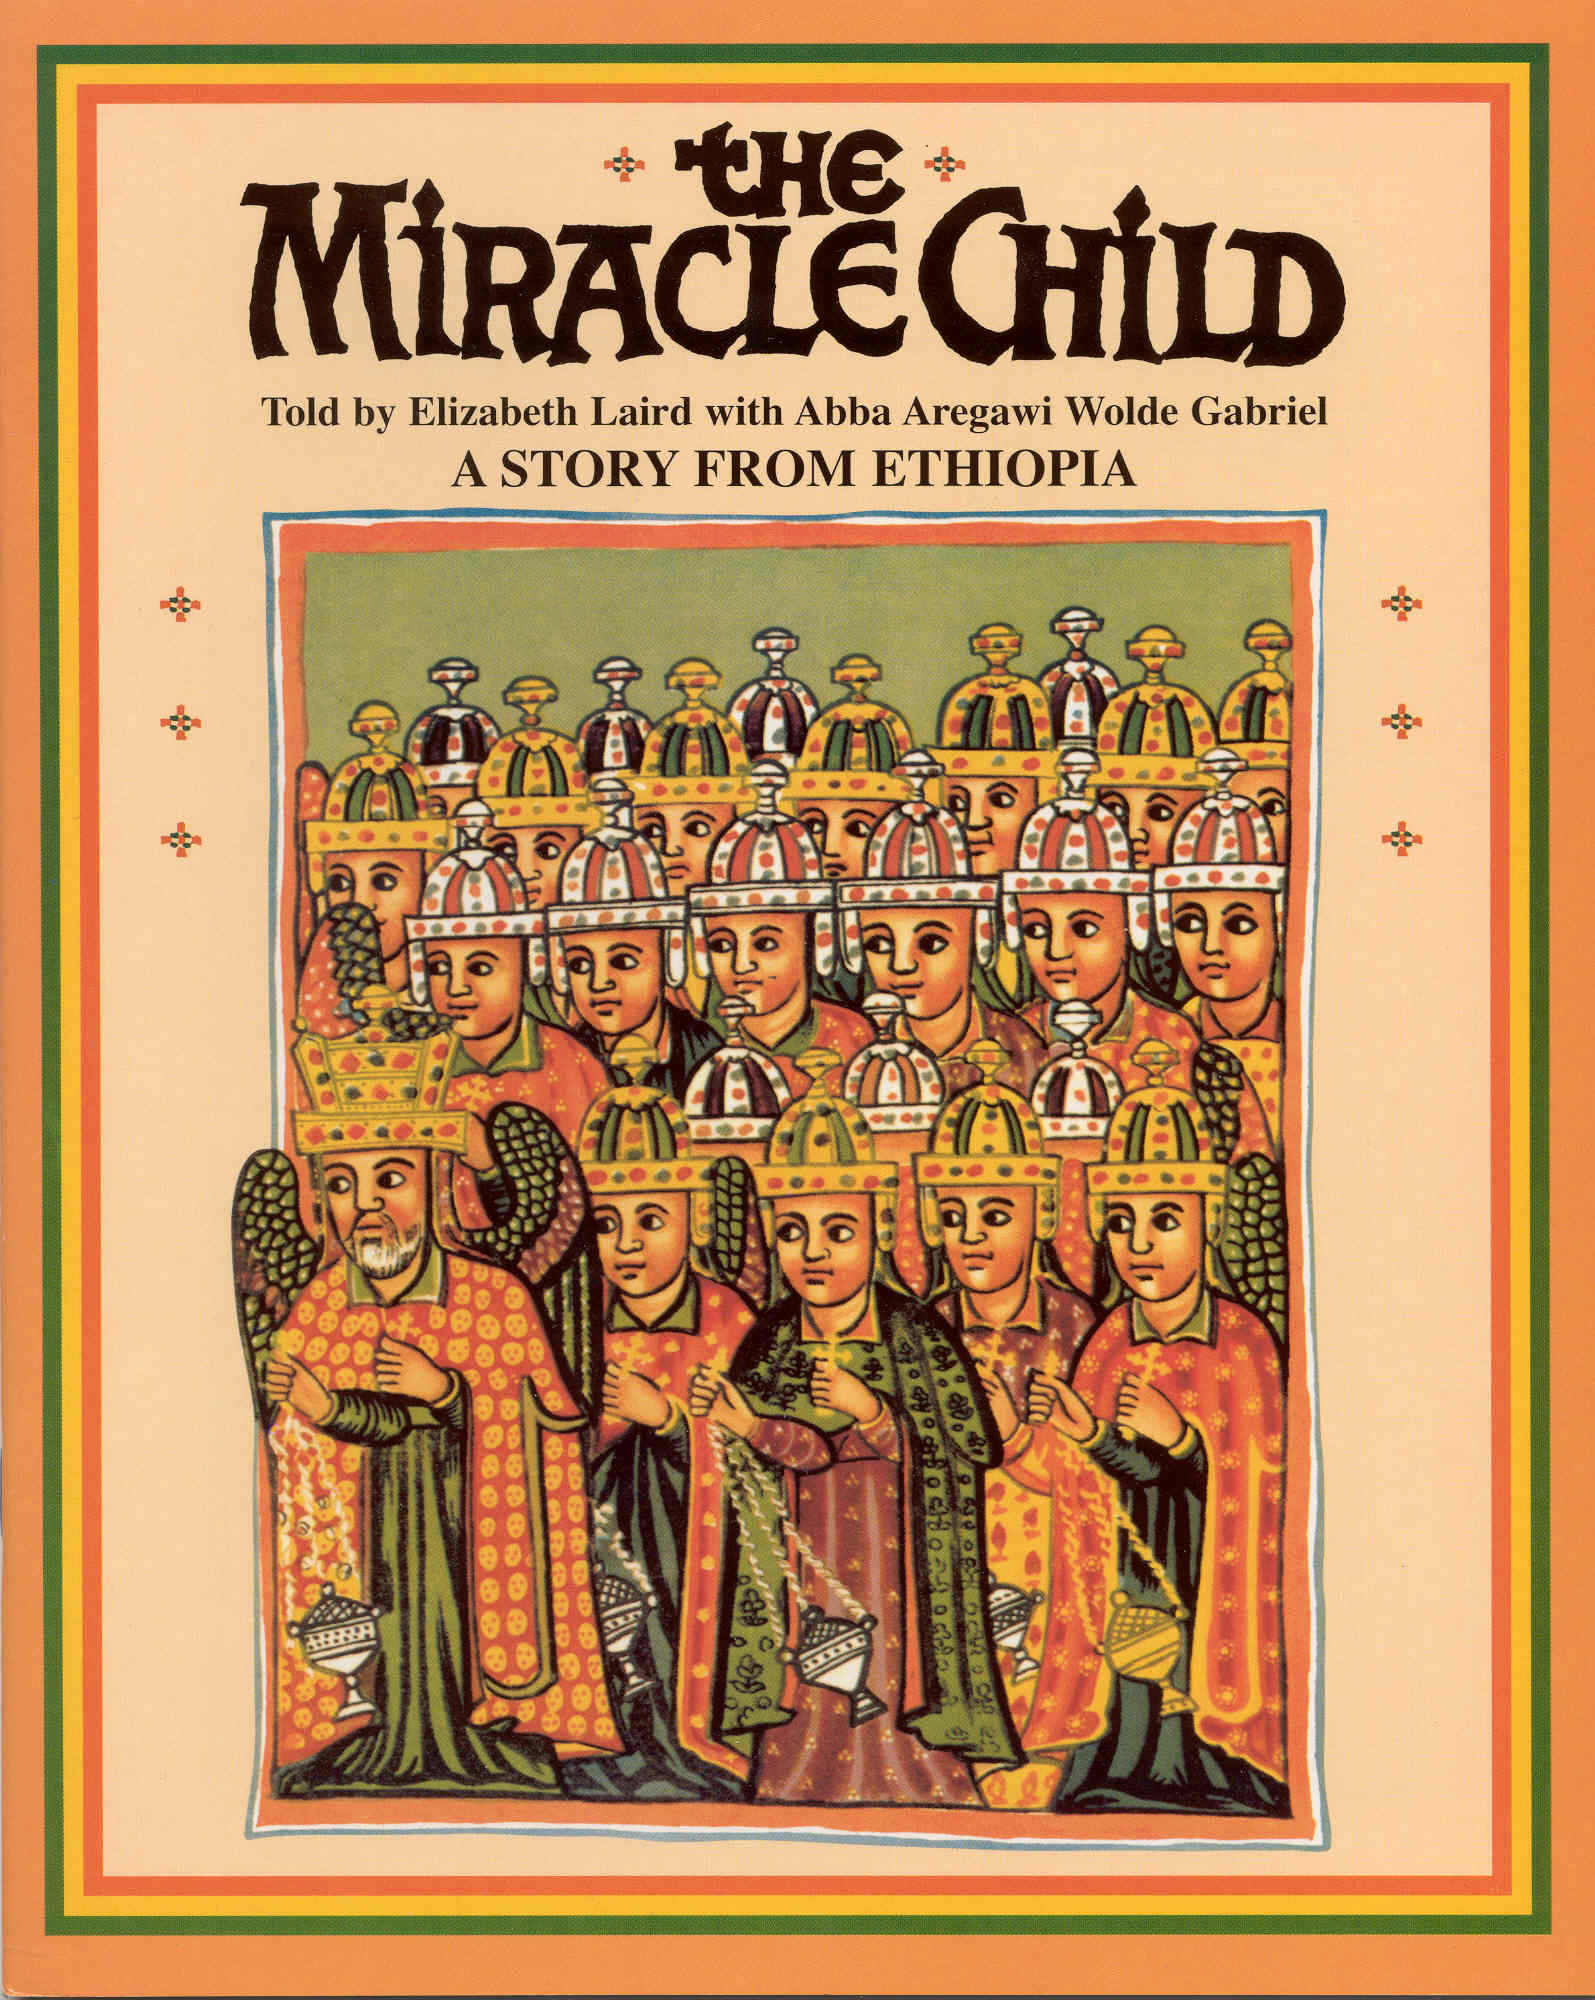 The Miracle Child.jpg